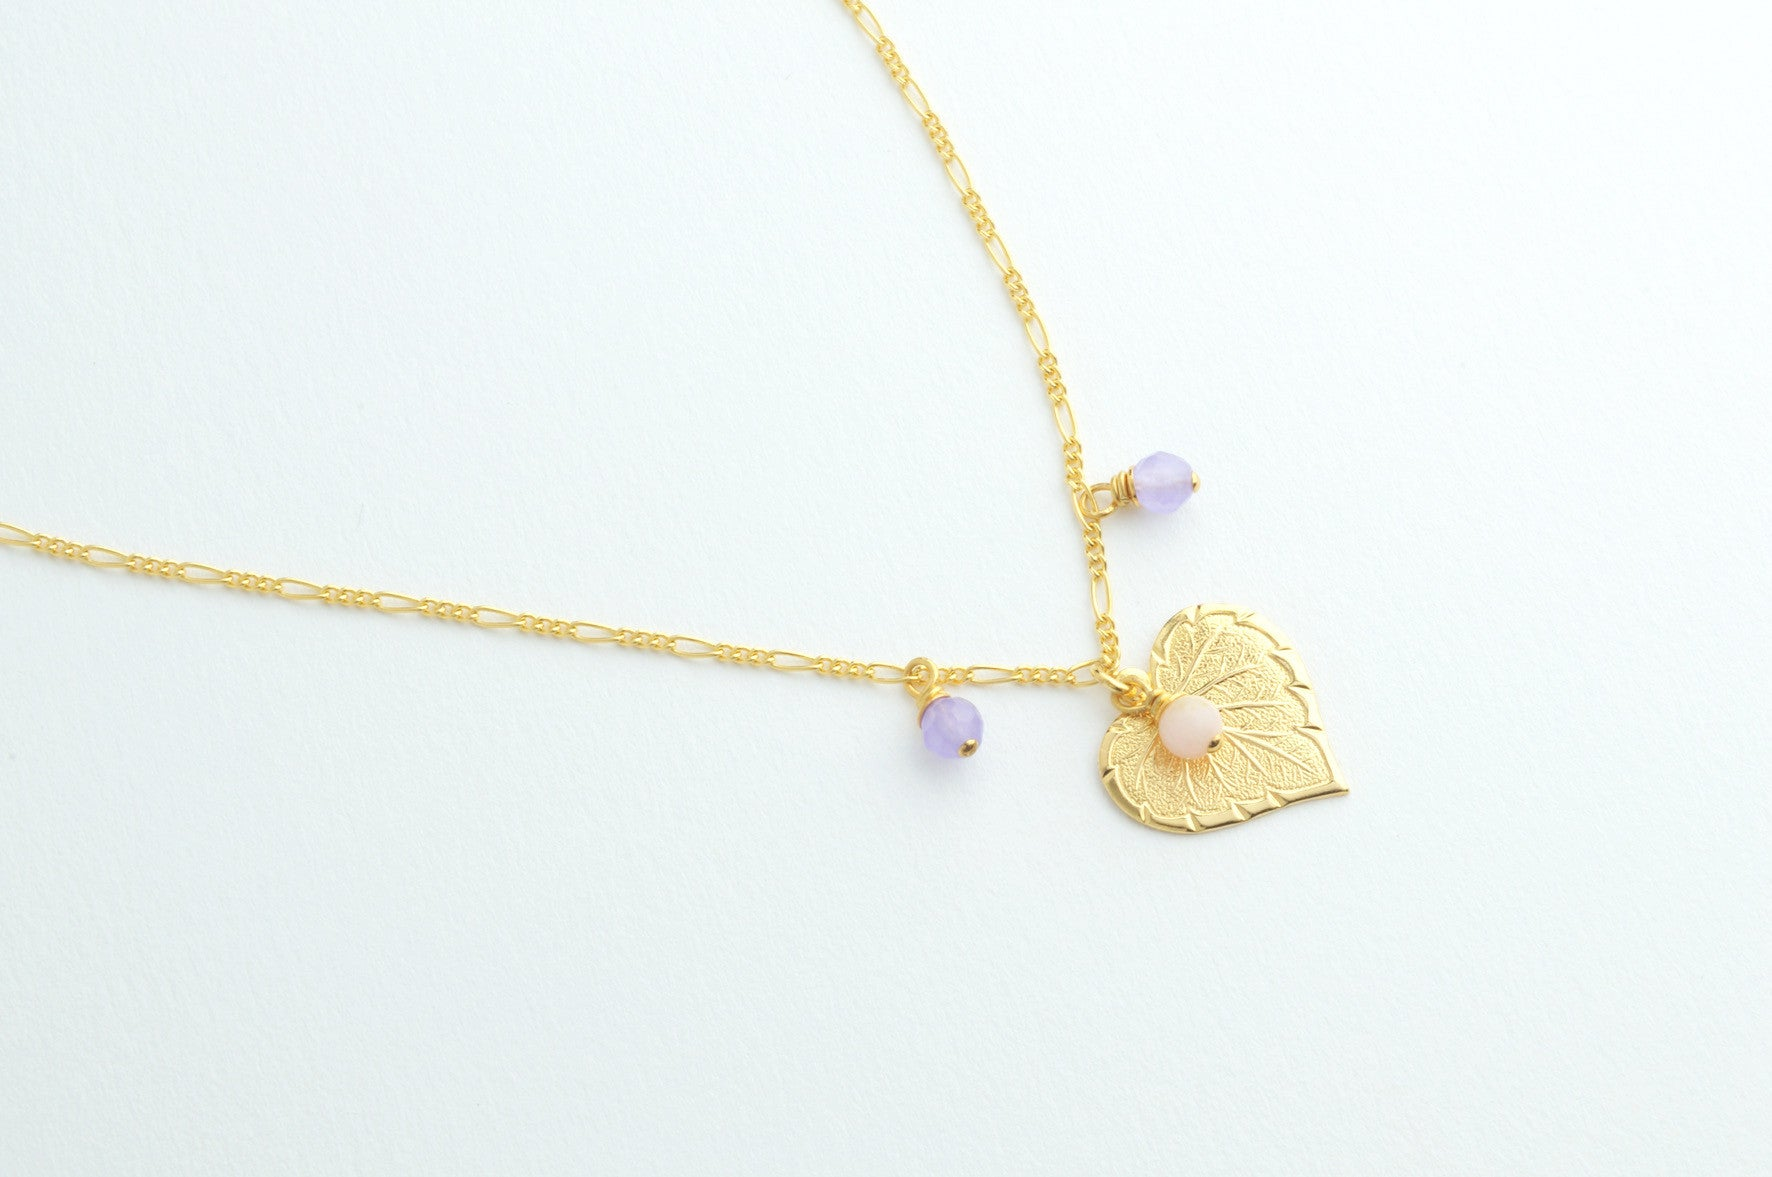 ....Kette HEARTLEAF small vergoldet..Necklace HEARTLEAF gold plated....